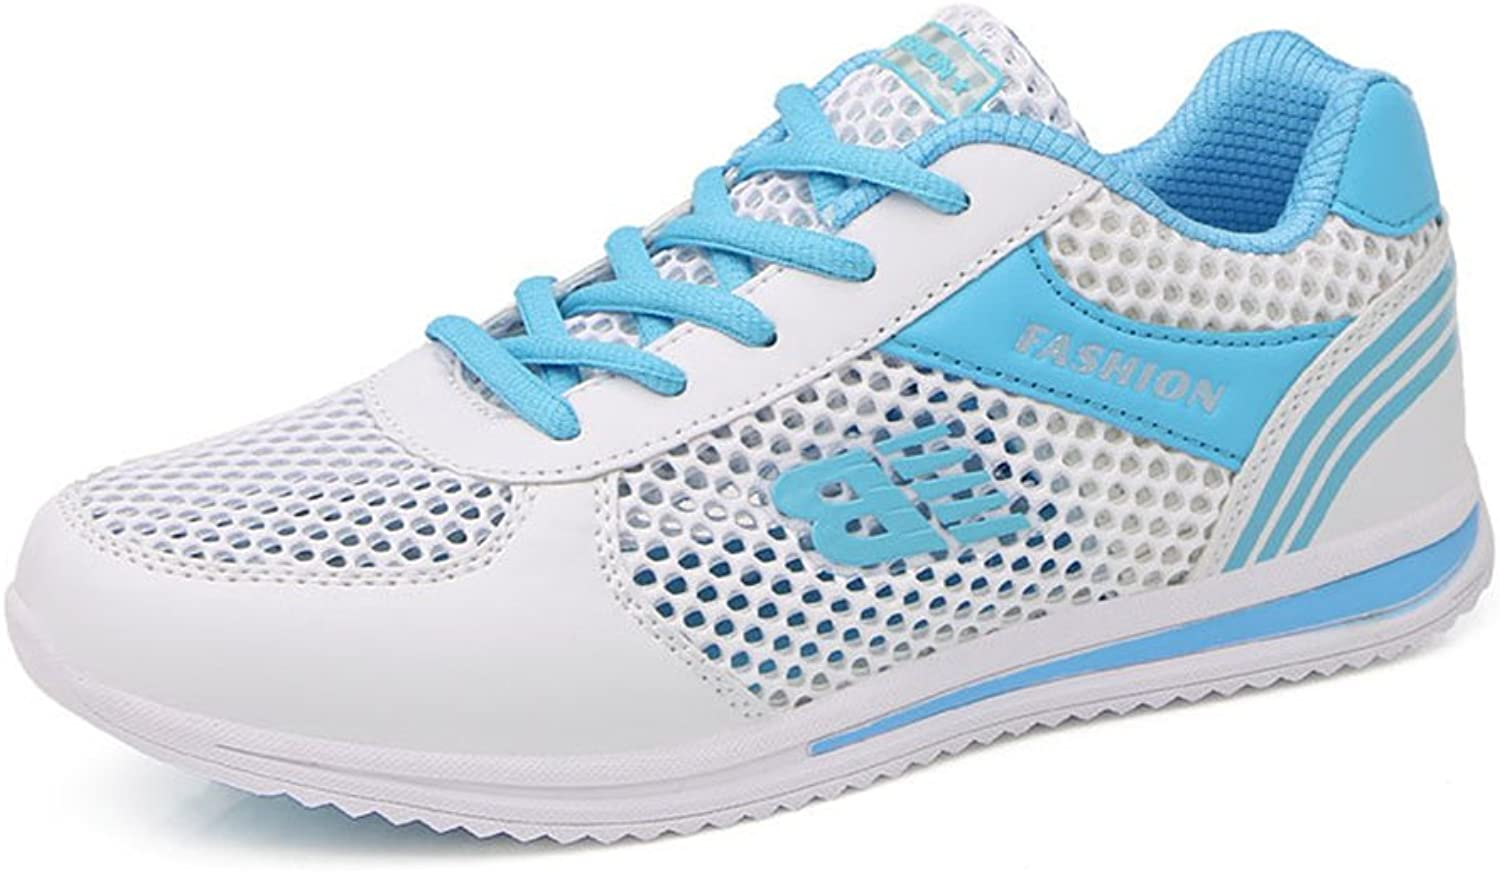 Lady's Jogging Sneaker Lightweight Go Easy Walking Casual Comfort Sports Running shoes